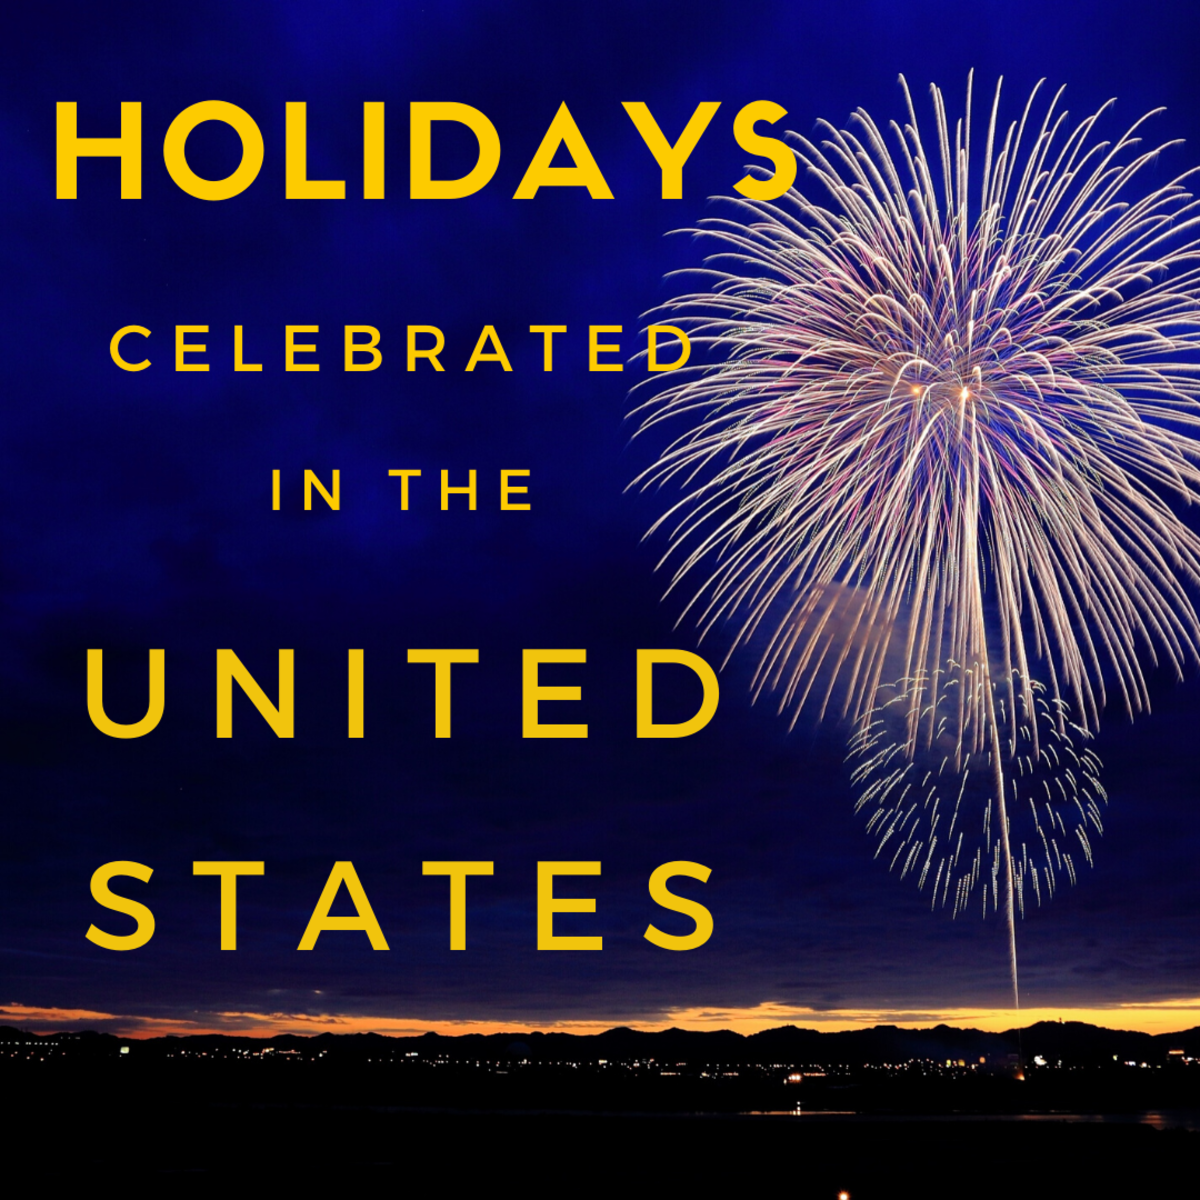 Many holidays are celebrated each month of the year in the US.